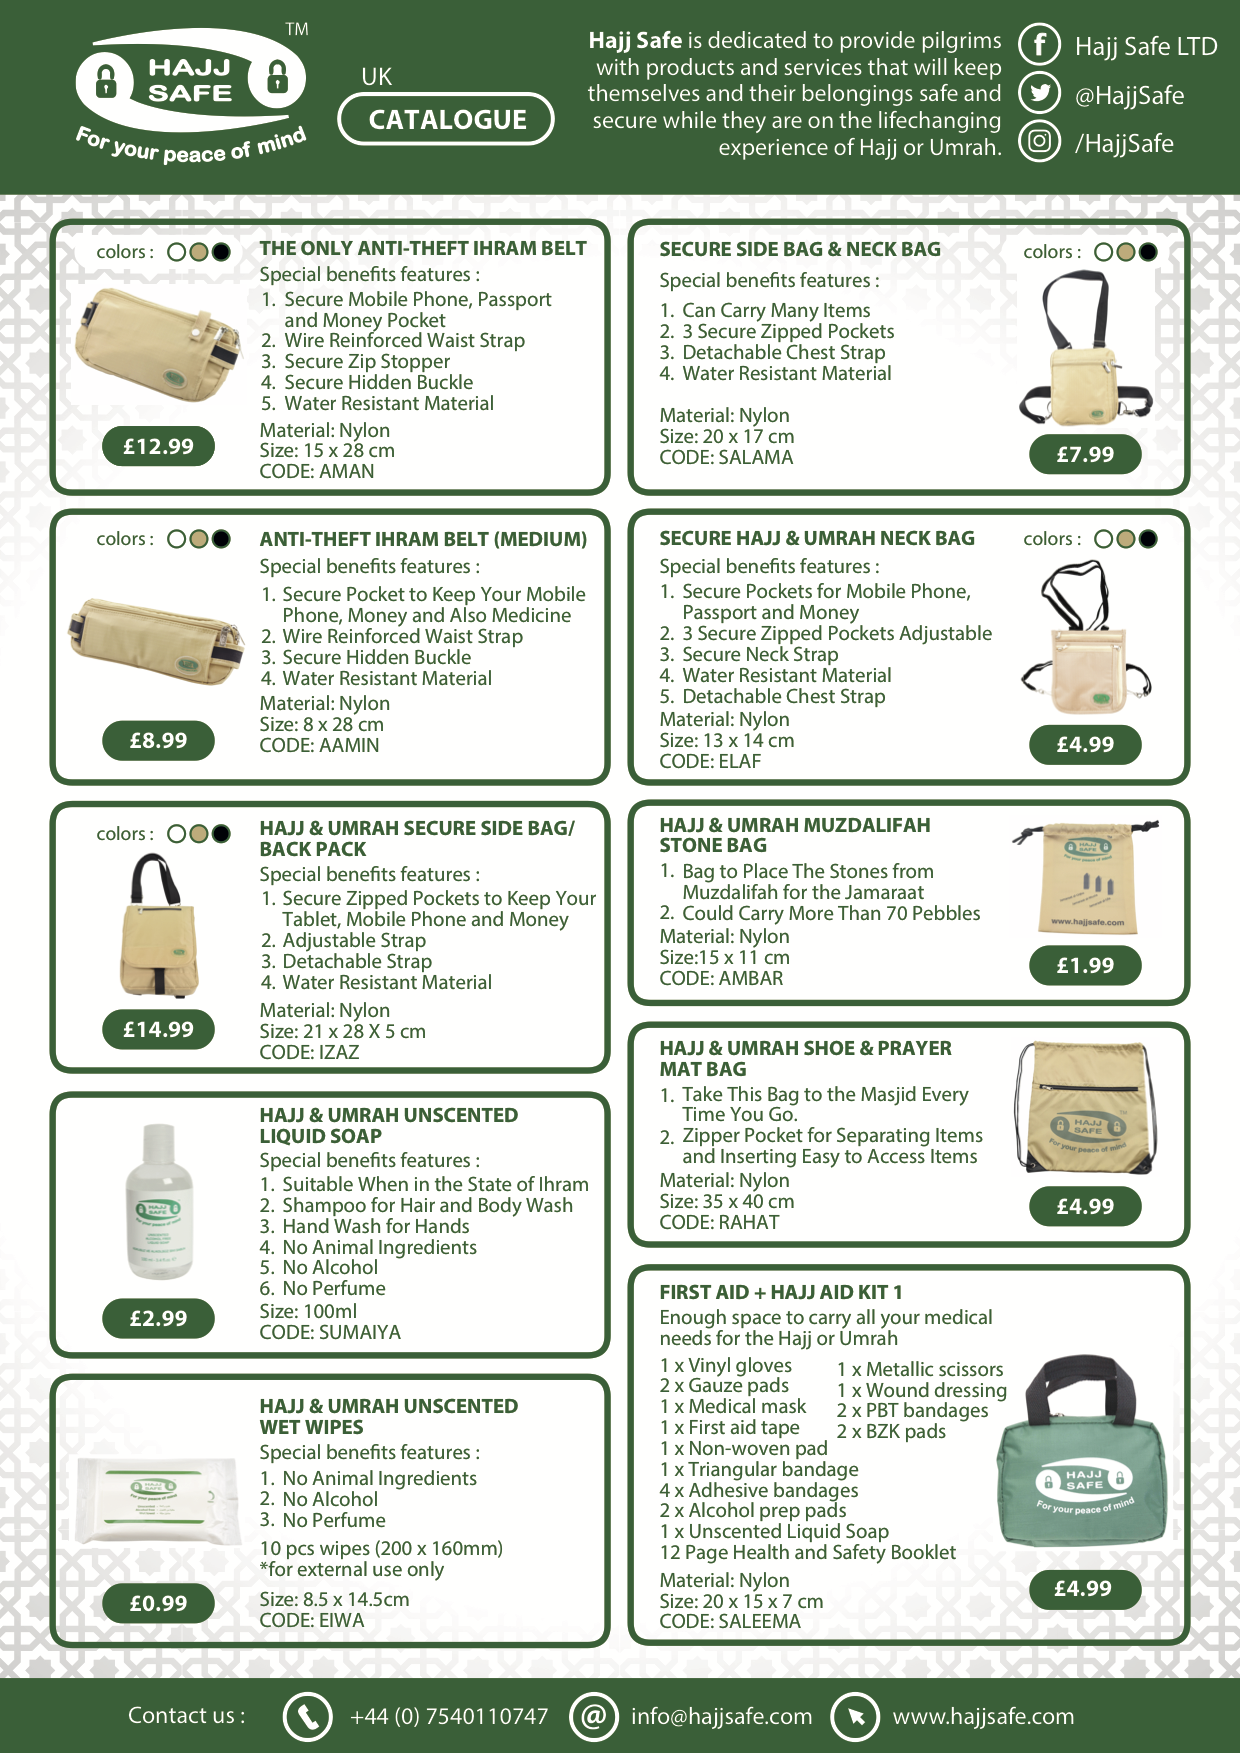 hajj-safe-catalogue-uk.png